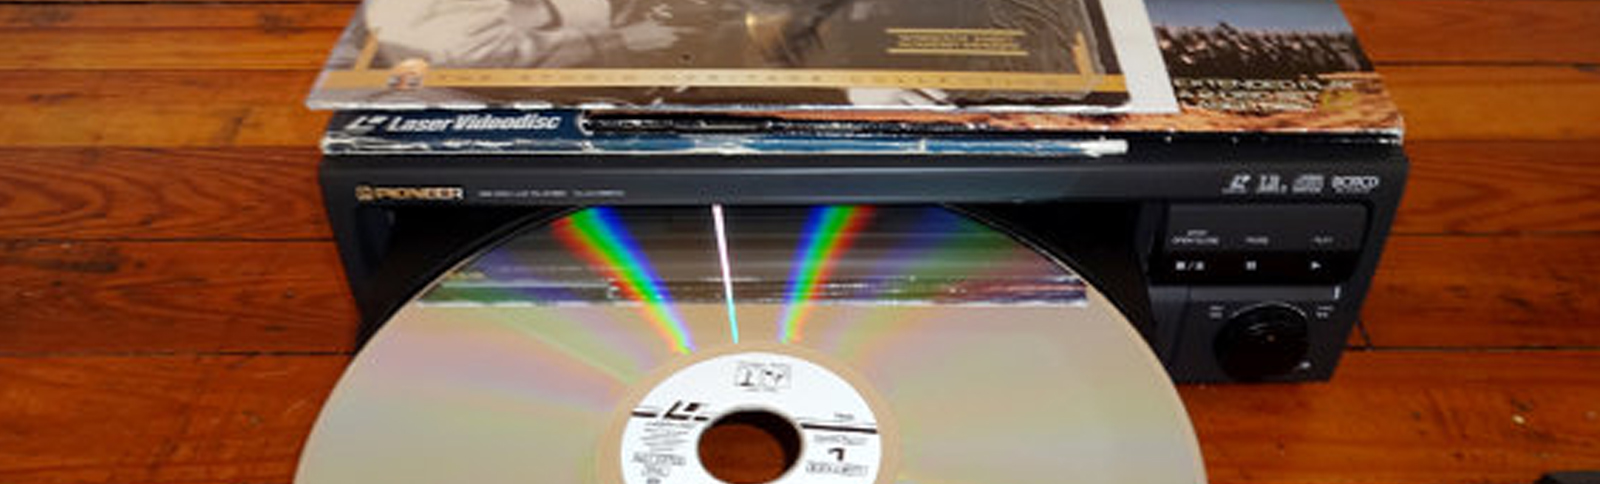 Laser Disc Conversions to Digital File or DVD in Oxfordshire UK